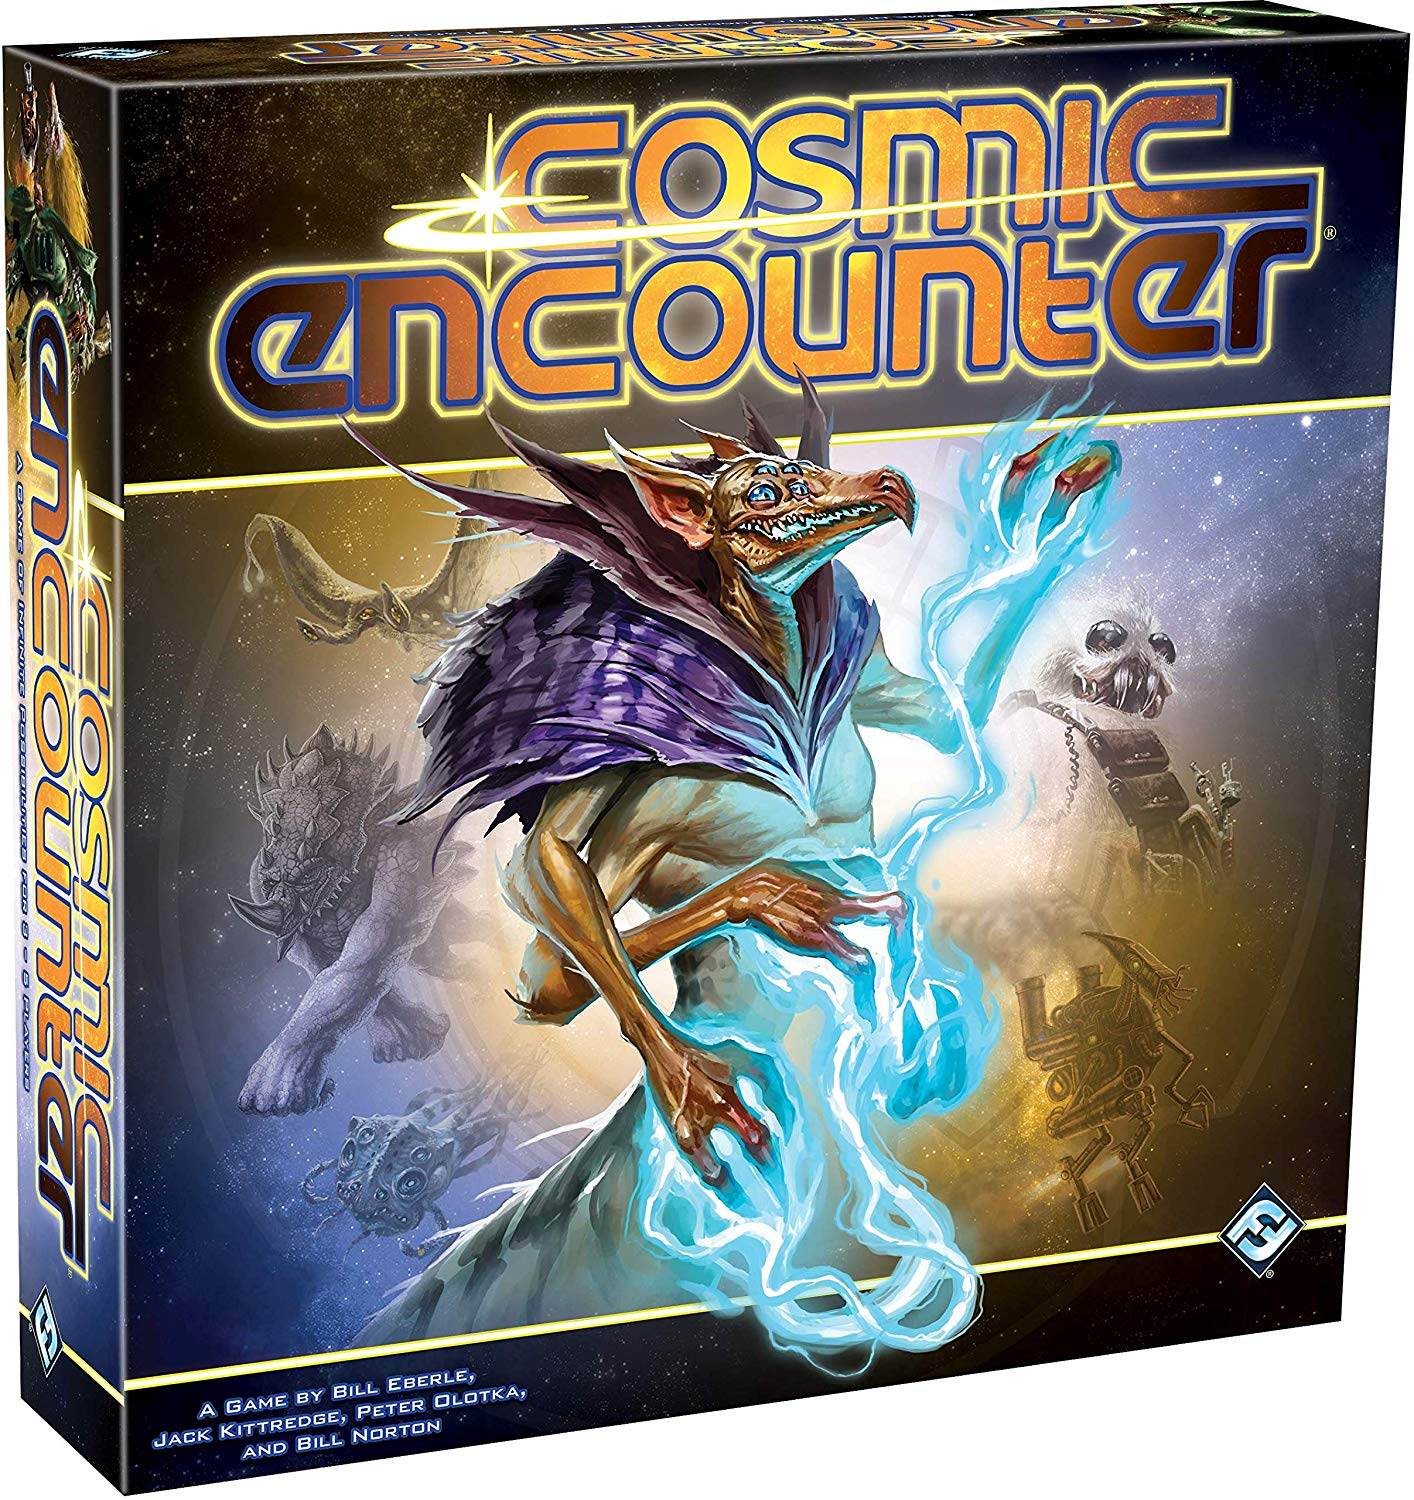 one-eyed-jacques-cosmic-encounter-board-game.jpg